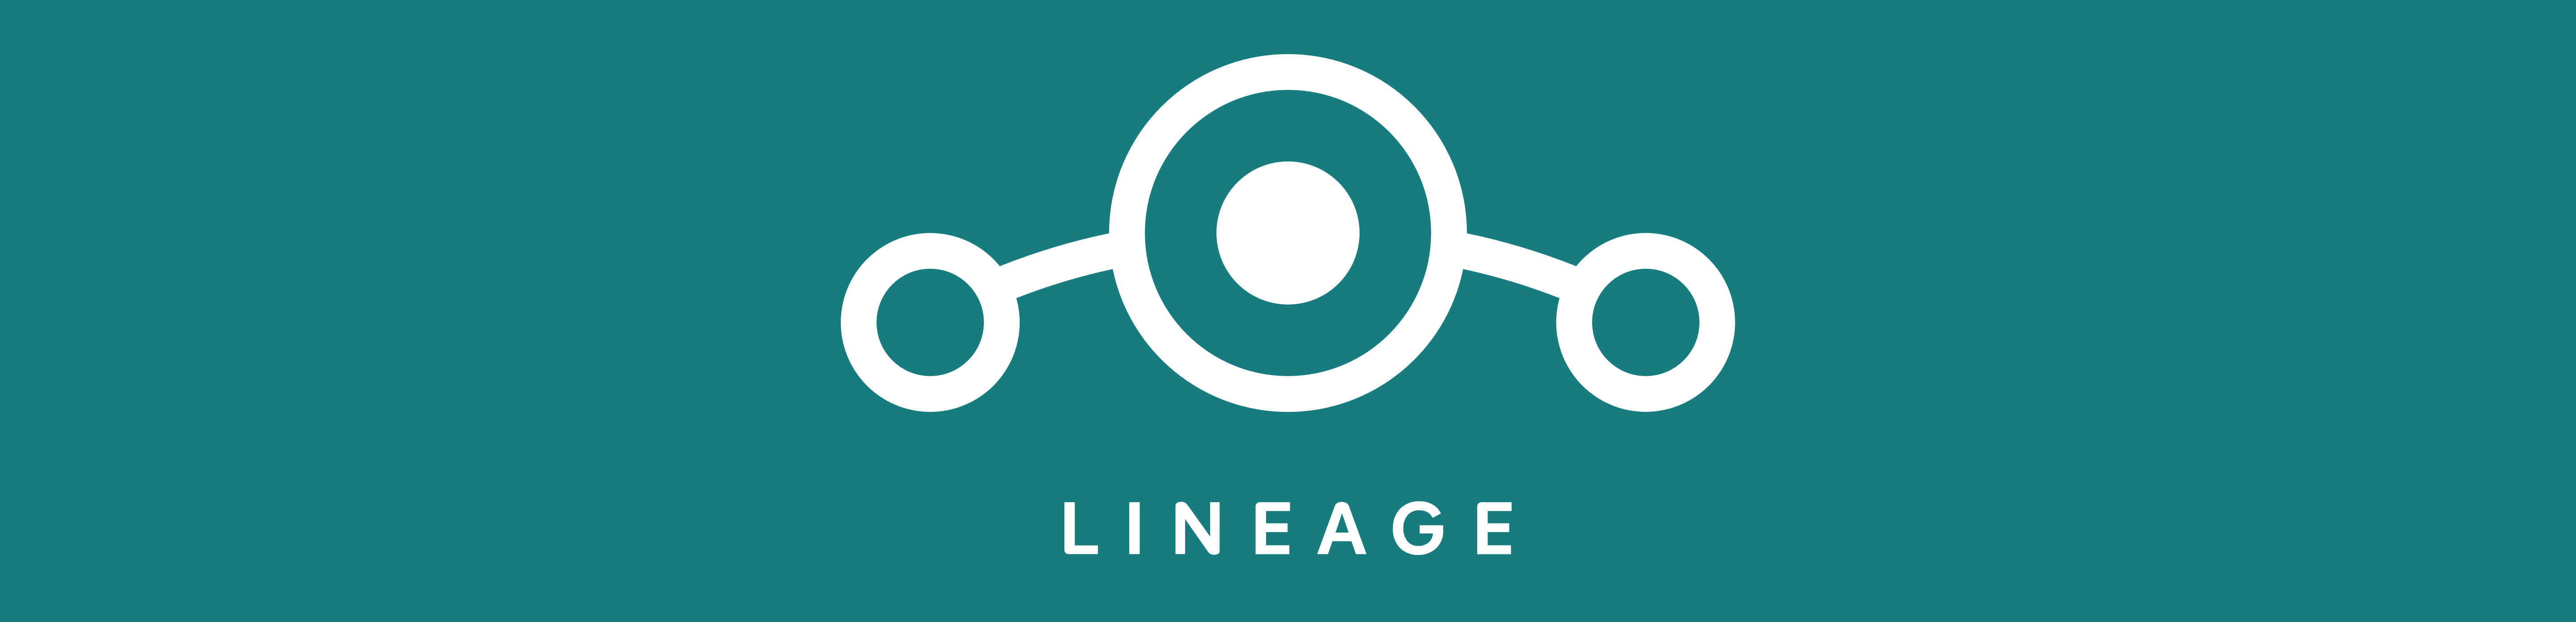 lineagelogo.png